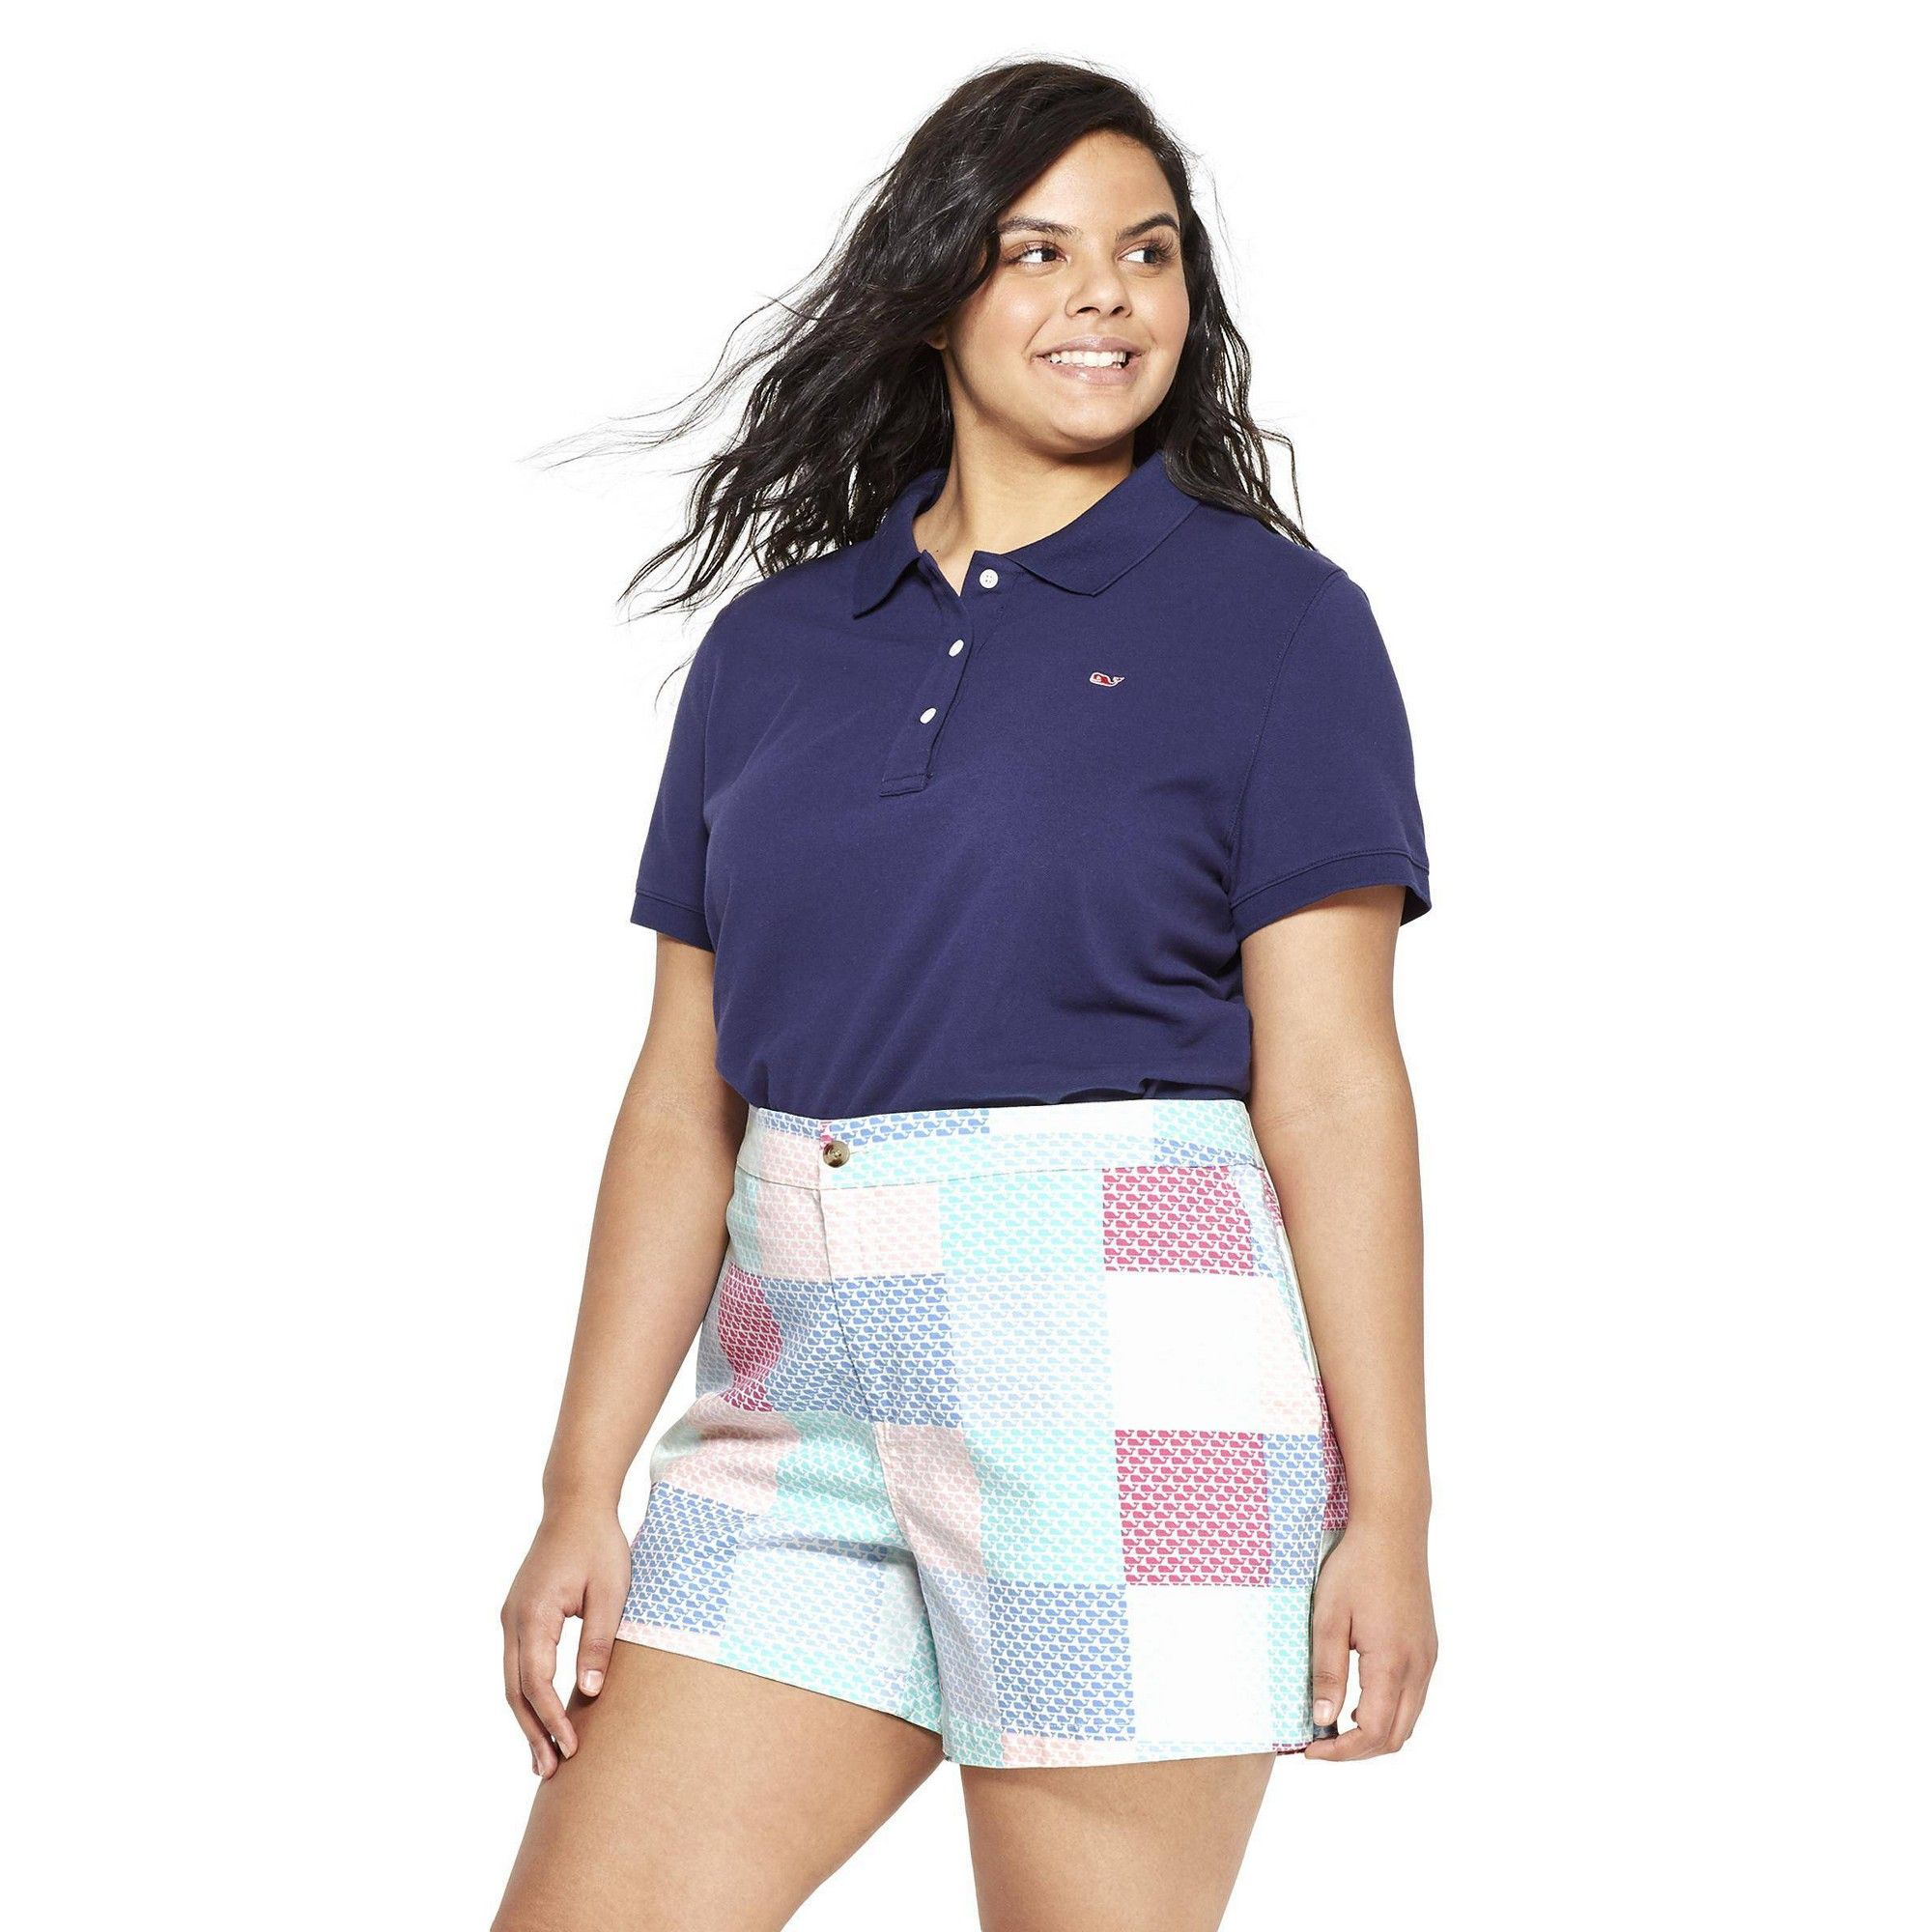 a08d79e385 Women's Plus Size Short Sleeve Polo Shirt - Navy 1X - vineyard vines for  Target,